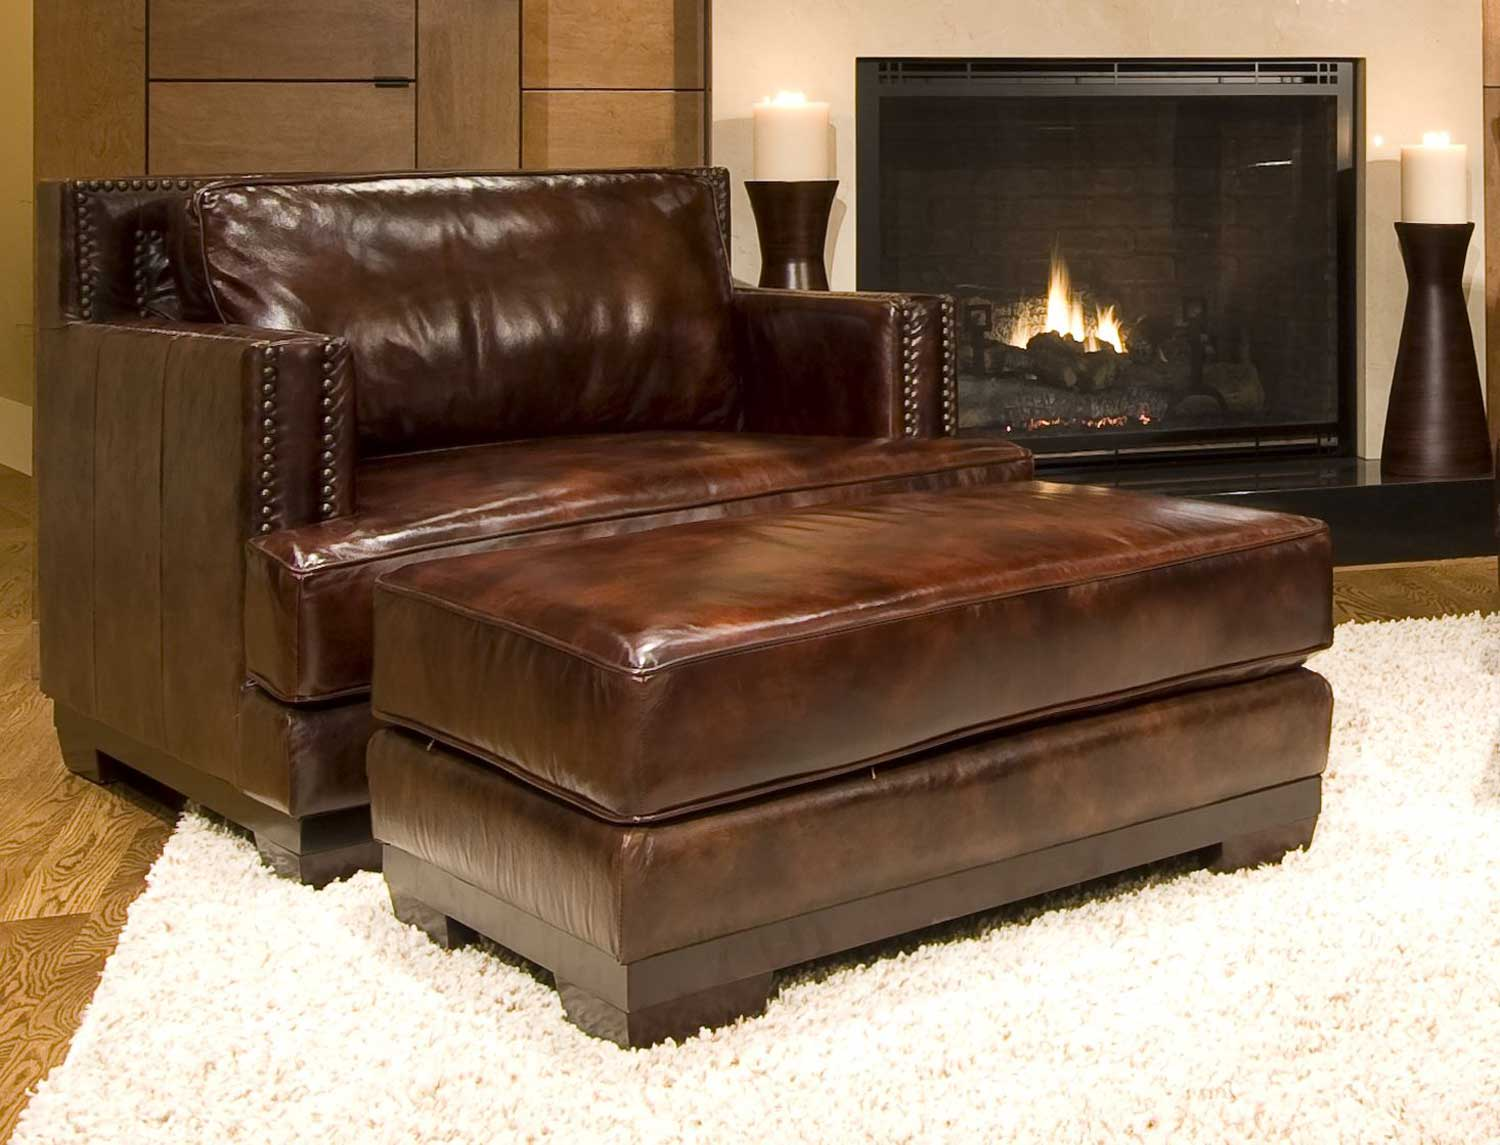 Lovable ELEMENTS Fine Home Furnishings EME PC SC SO SADD Emerson Set Top Grain Leather Accent Chai Product Photo